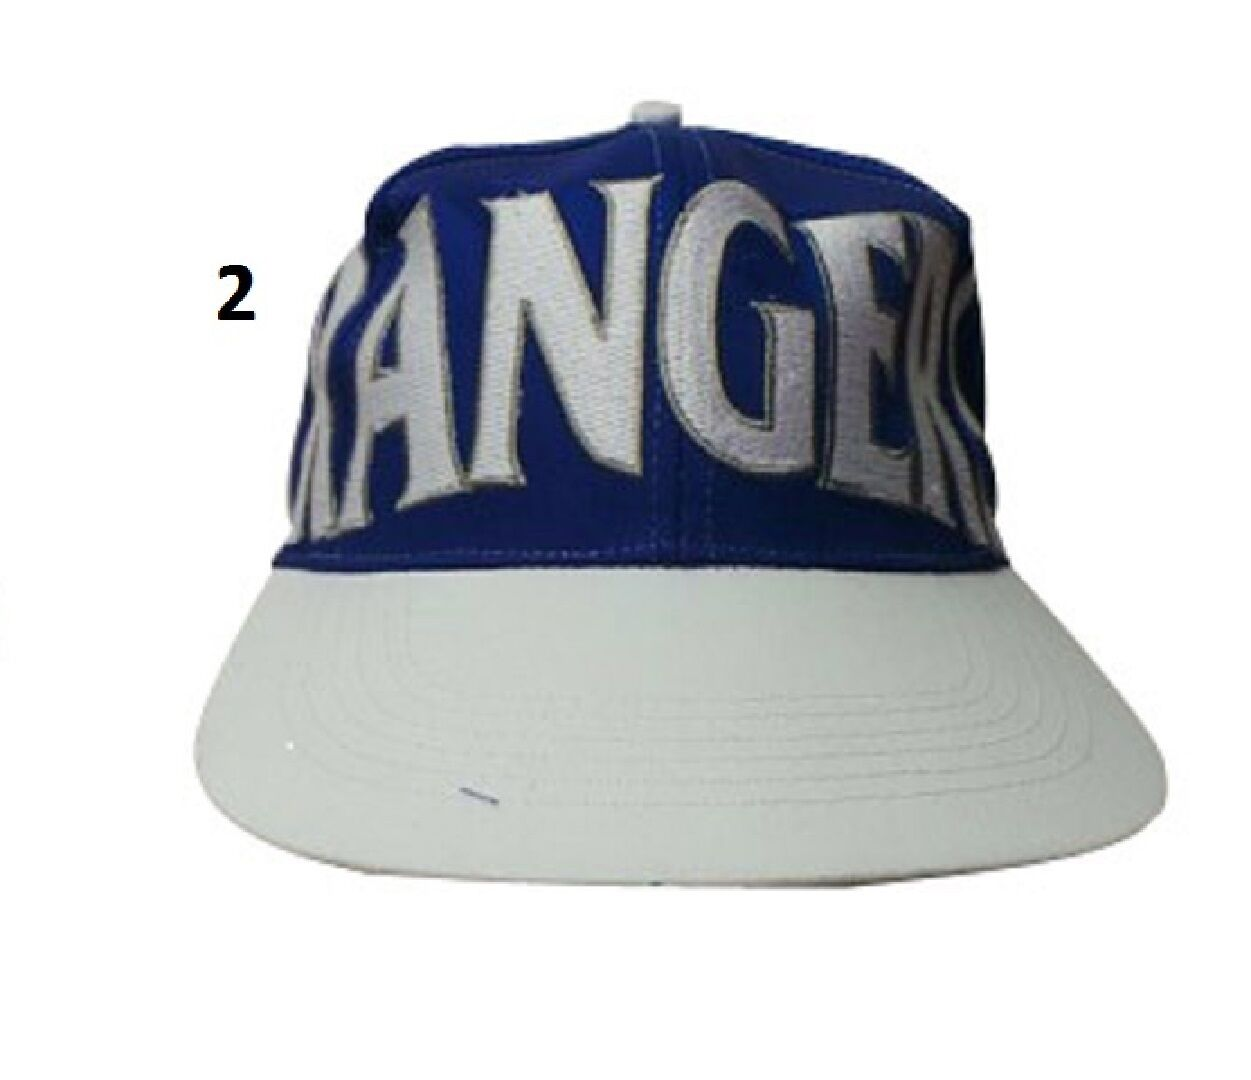 RANGERS CAP BUY IT NOW PRICE ONLY 2.69